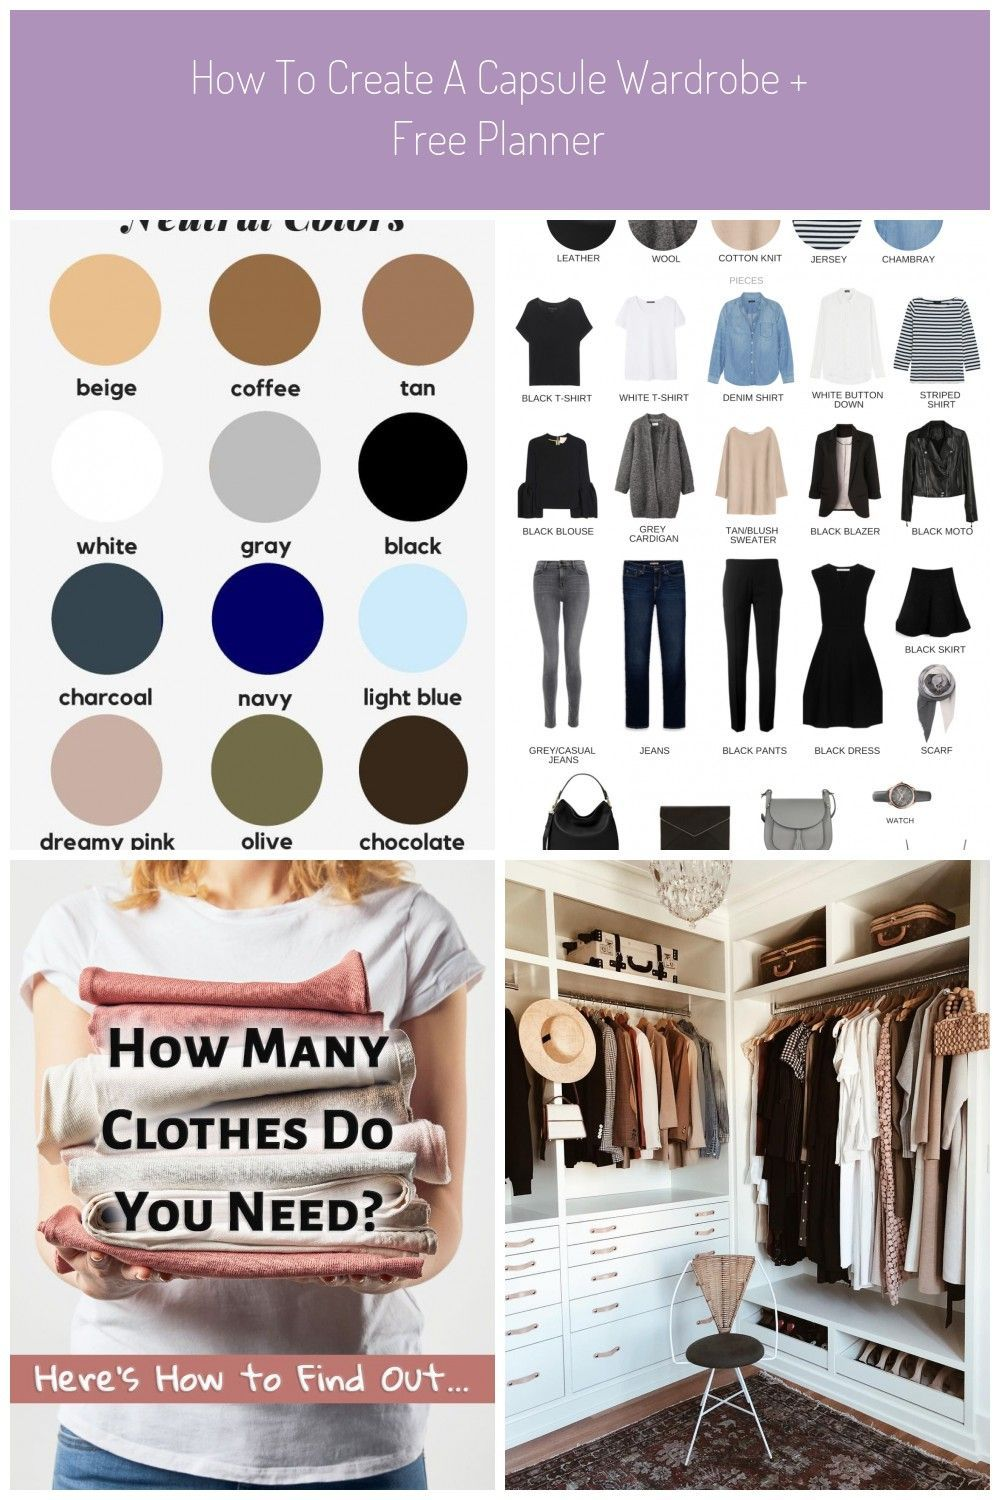 How To Create A Capsule Wardrobe|Learn in 7 easy to follow